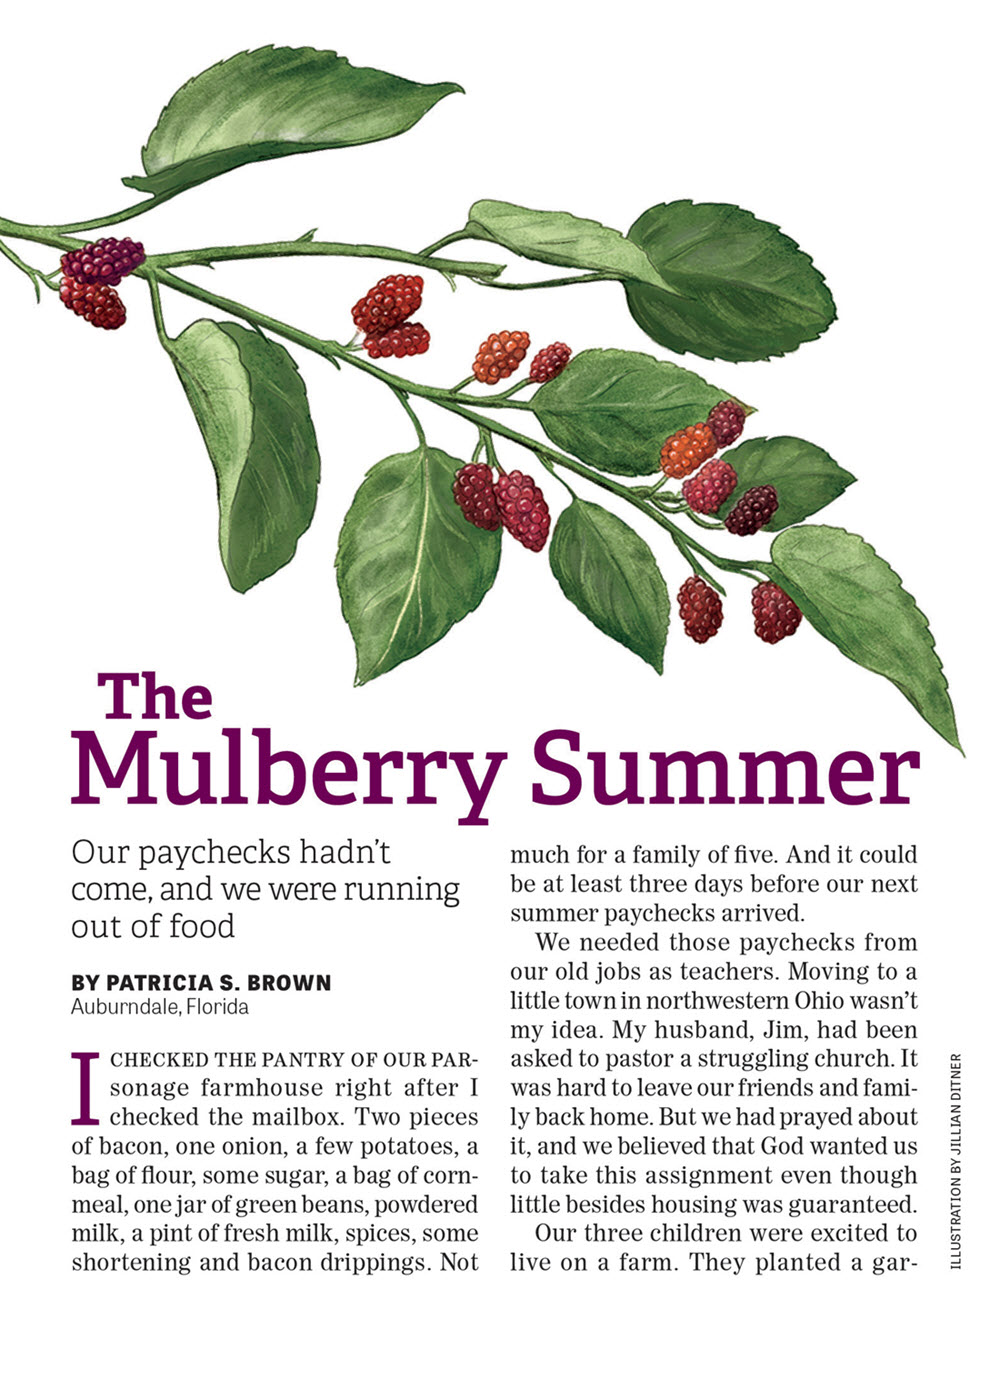 Mulberry Summer - JD462a